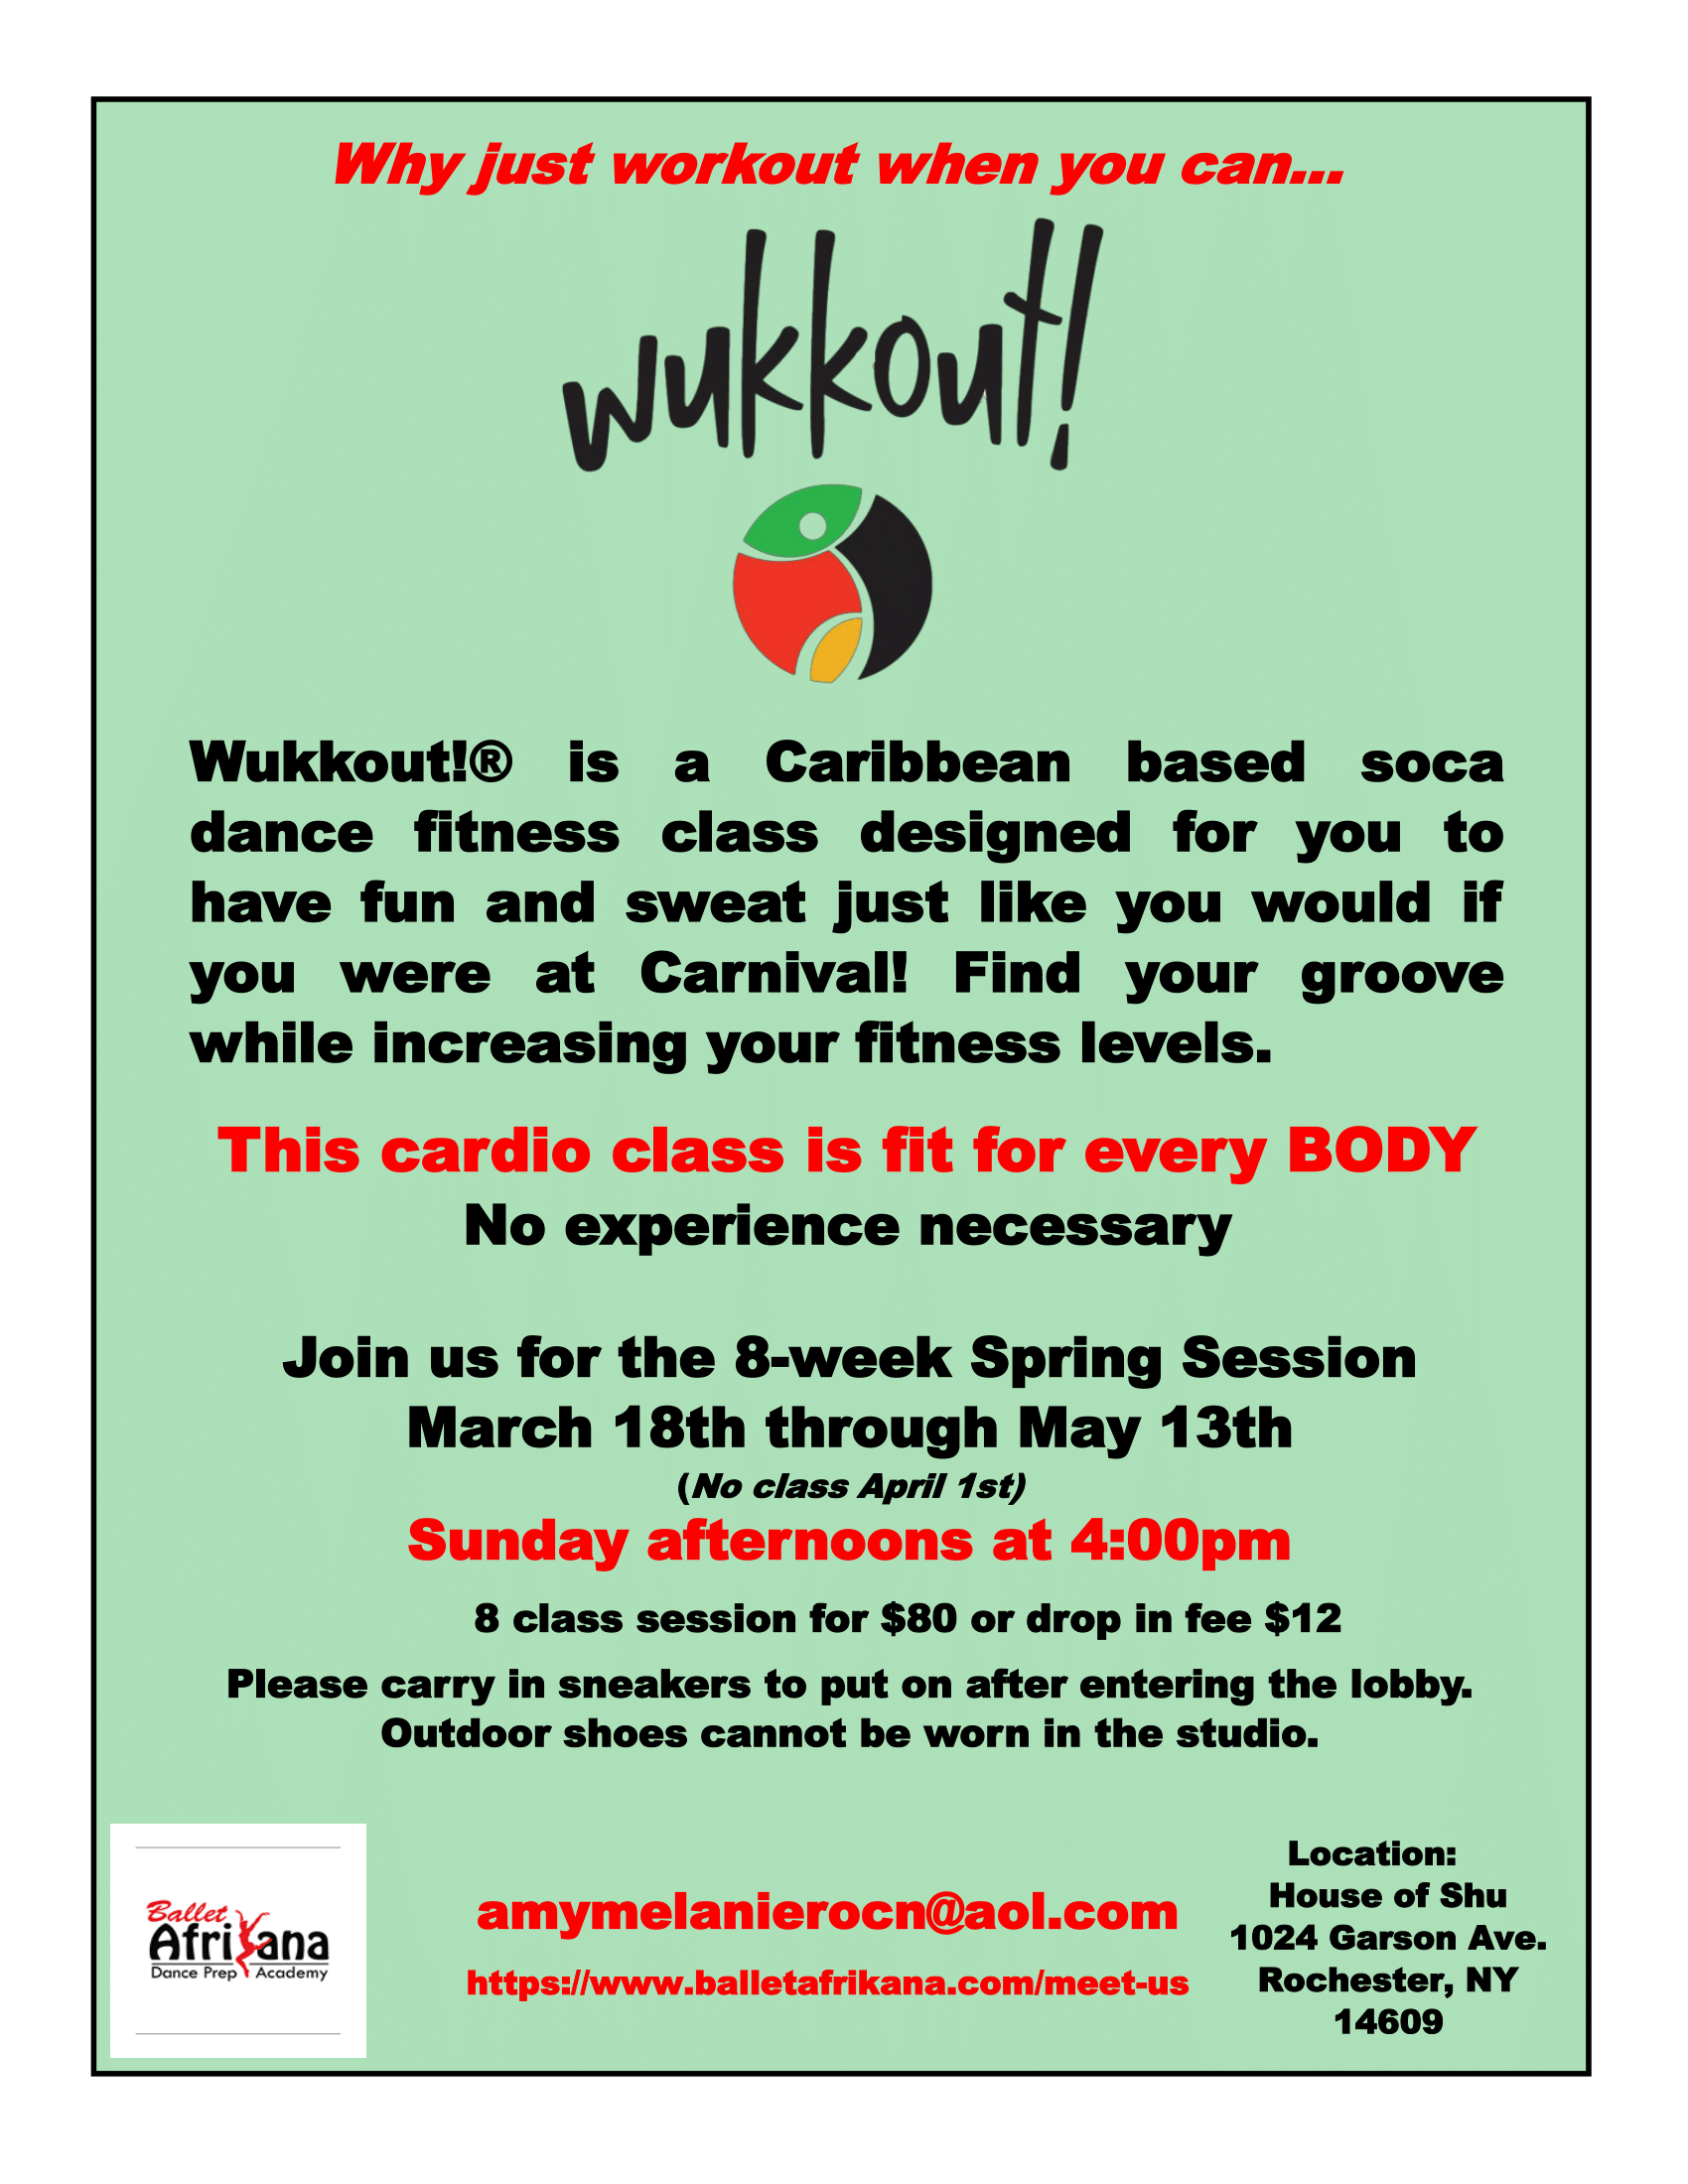 Wukkout!® in Rochester - Sundays March 18th through May 13th4pmBallet Afrikana, 1024 Garson Ave., Rochester, NY 14609$12.00 drop-in | $80.00 for all 8 classesClick here to pre-register.